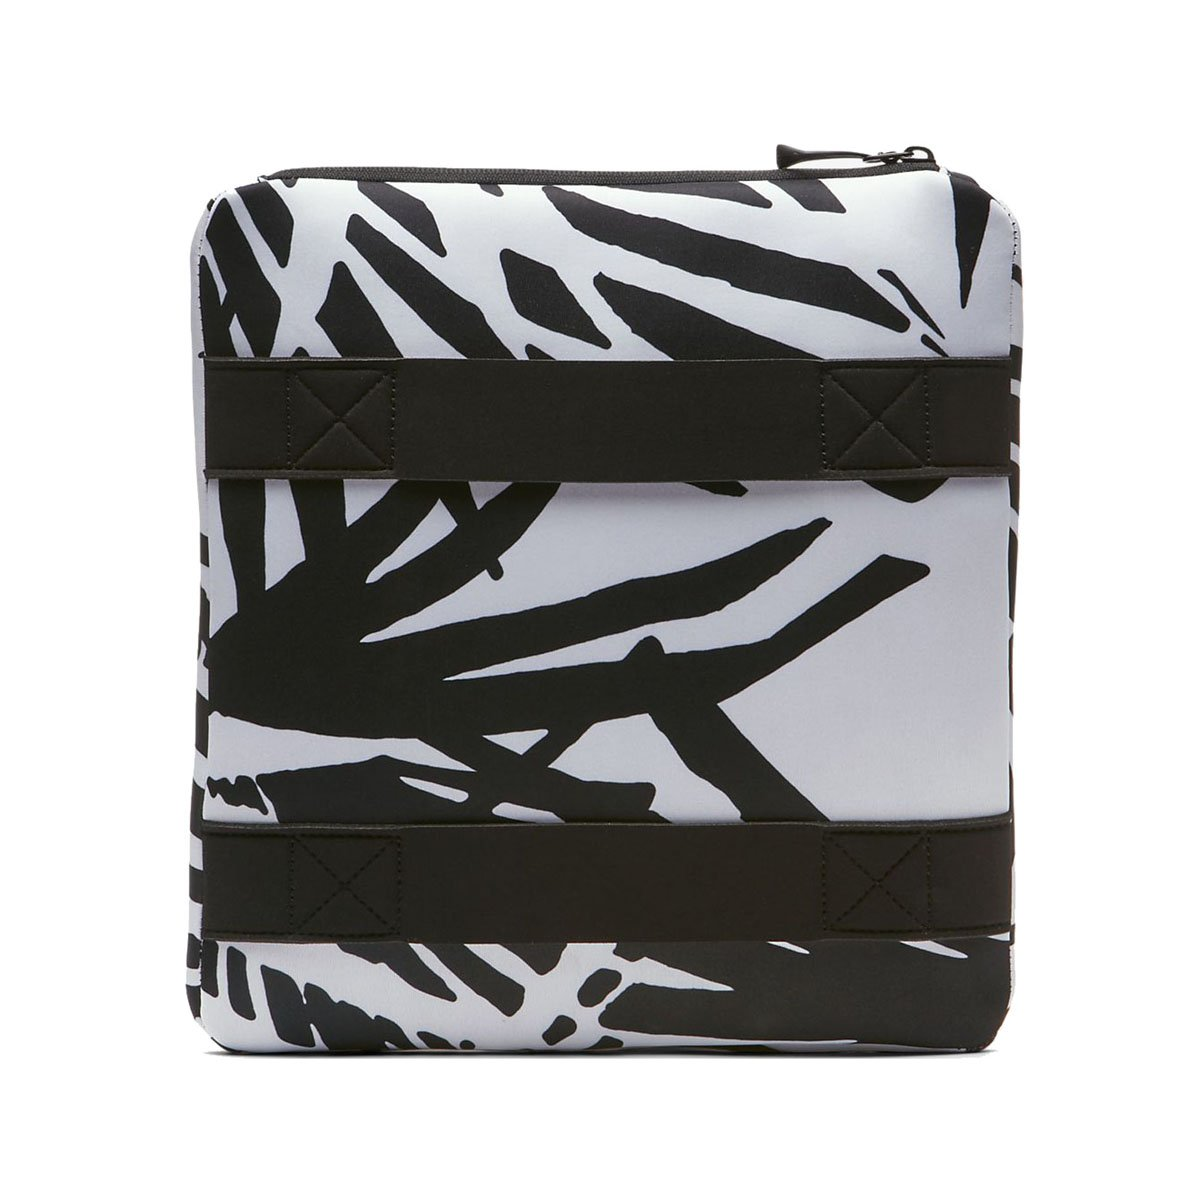 SMALL NEOPRENE CLUTCH